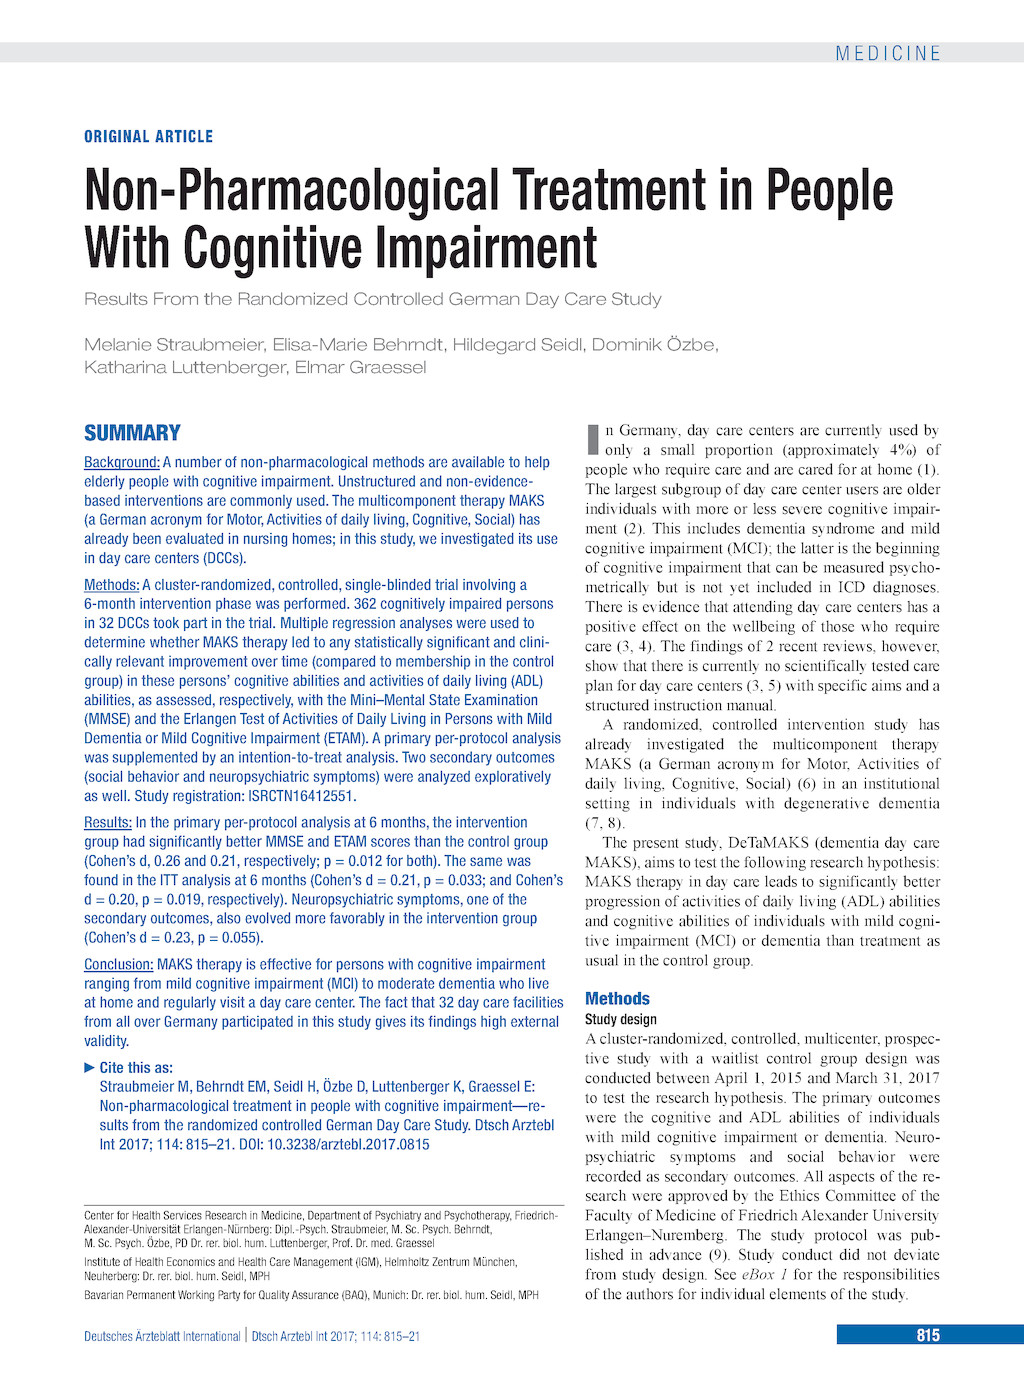 Non-Pharmacological Treatment in People With Cognitive